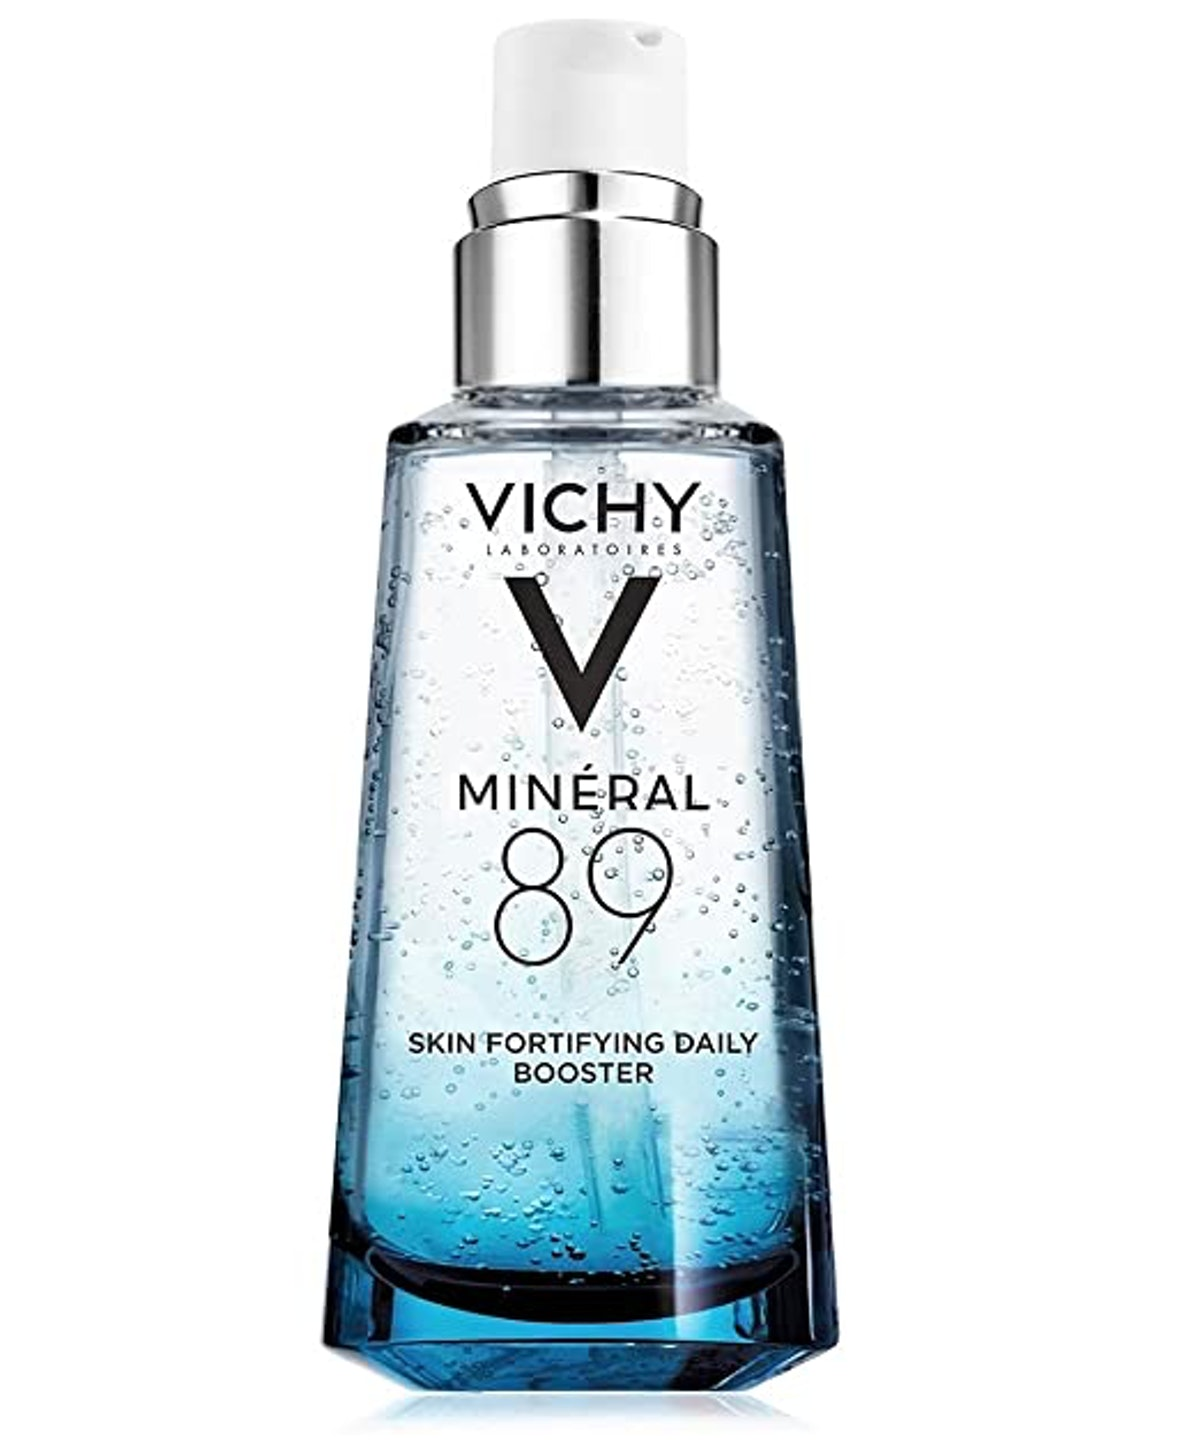 Vichy Mineral 89 Skin Fortifying Daily Booster